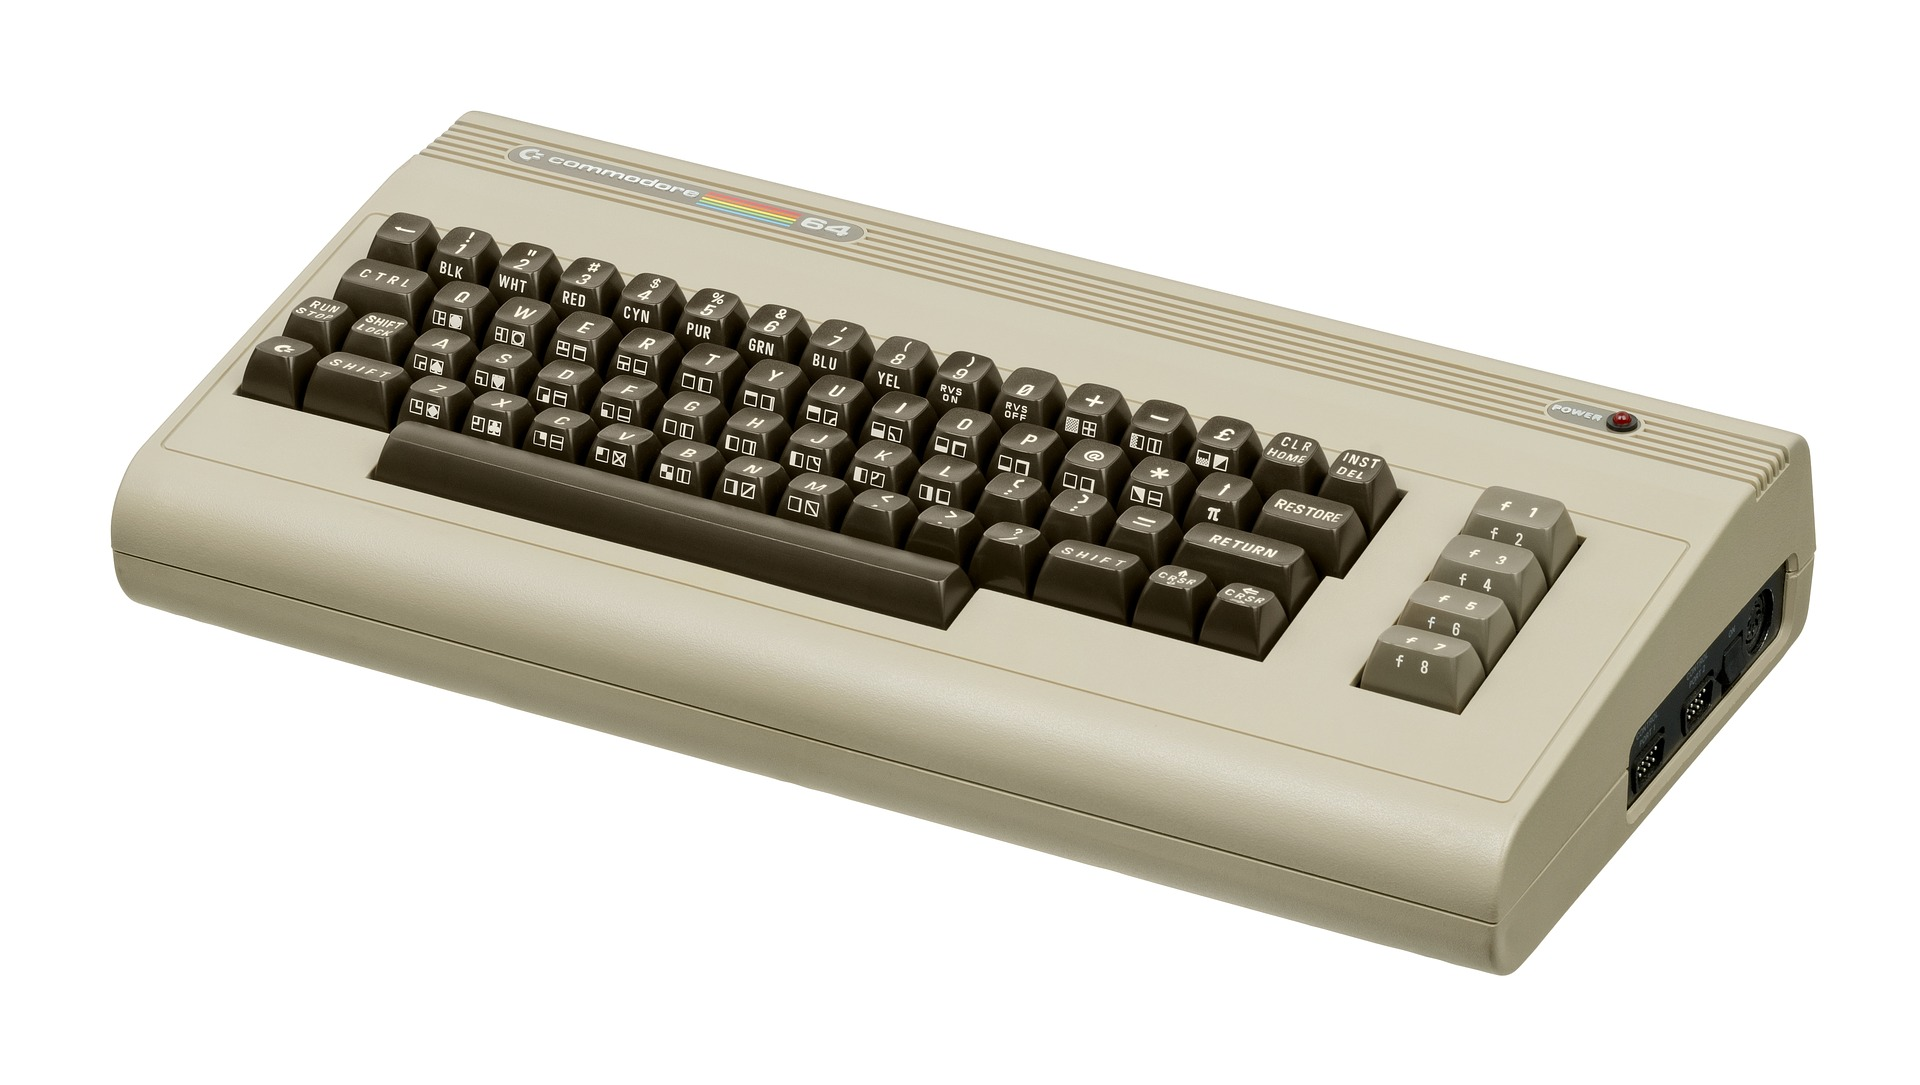 La Commodore 64